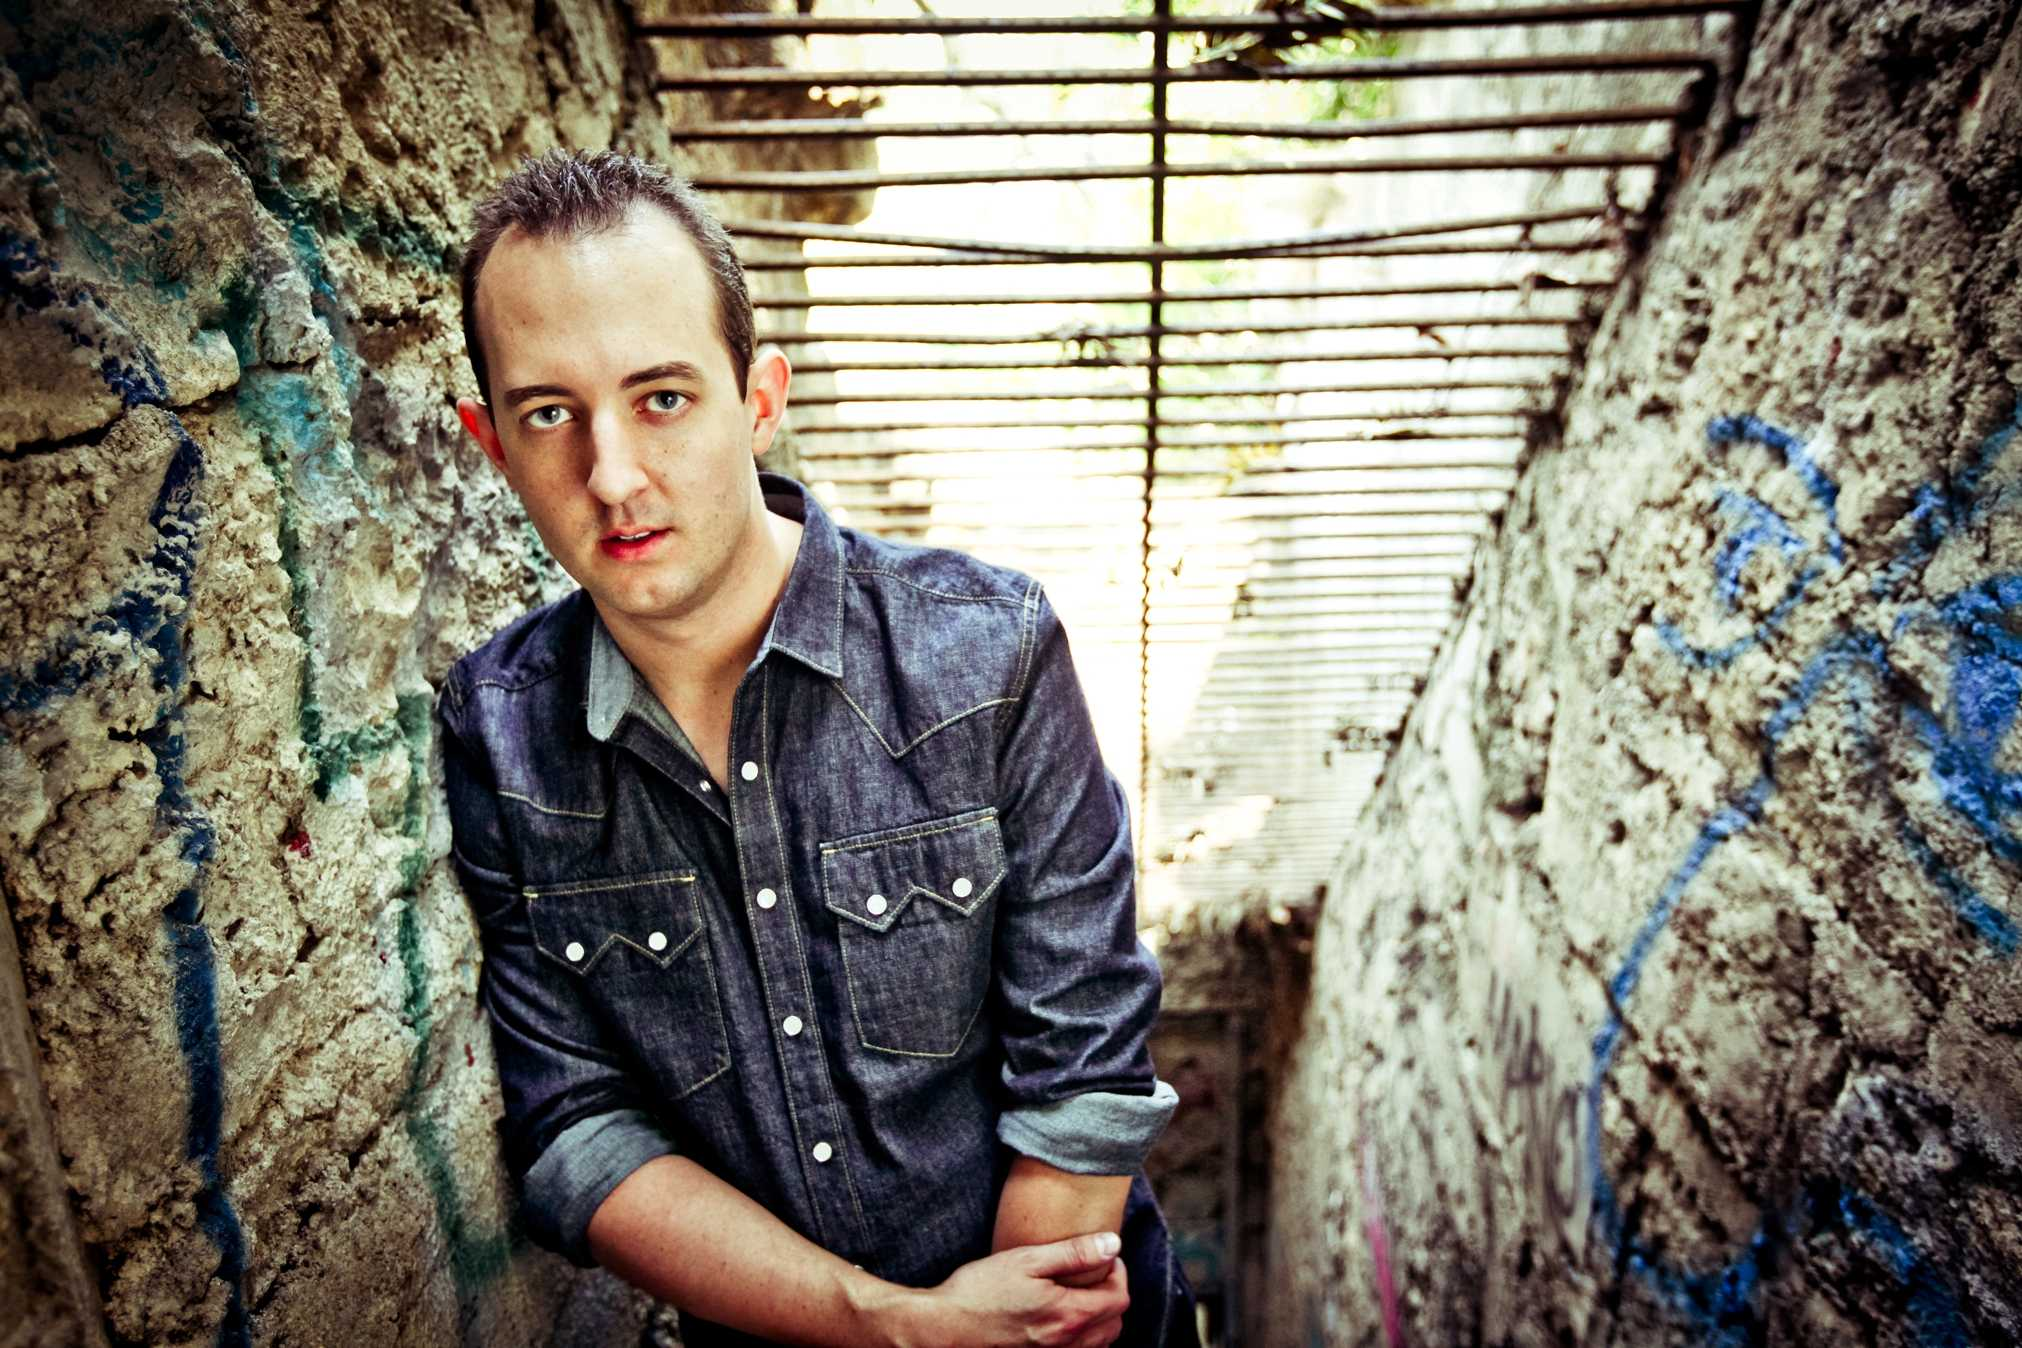 The Daily Northwestern : Q&A: Wolfgang Gartner, international DJ ...